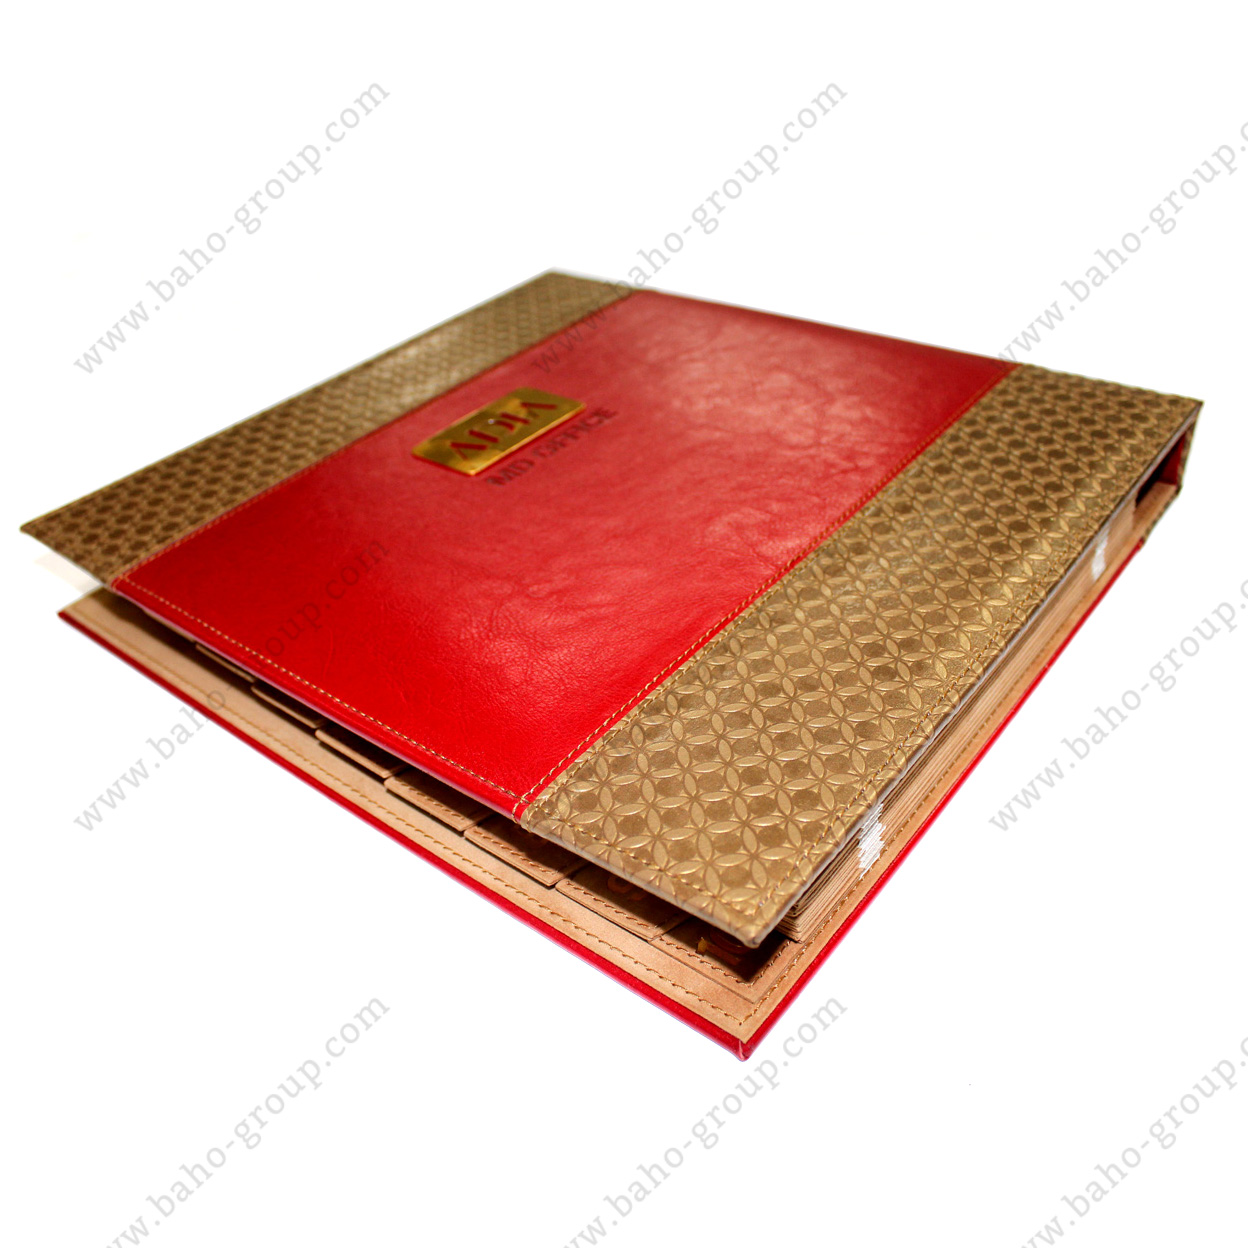 ADIA VVIP FILING FOLDER